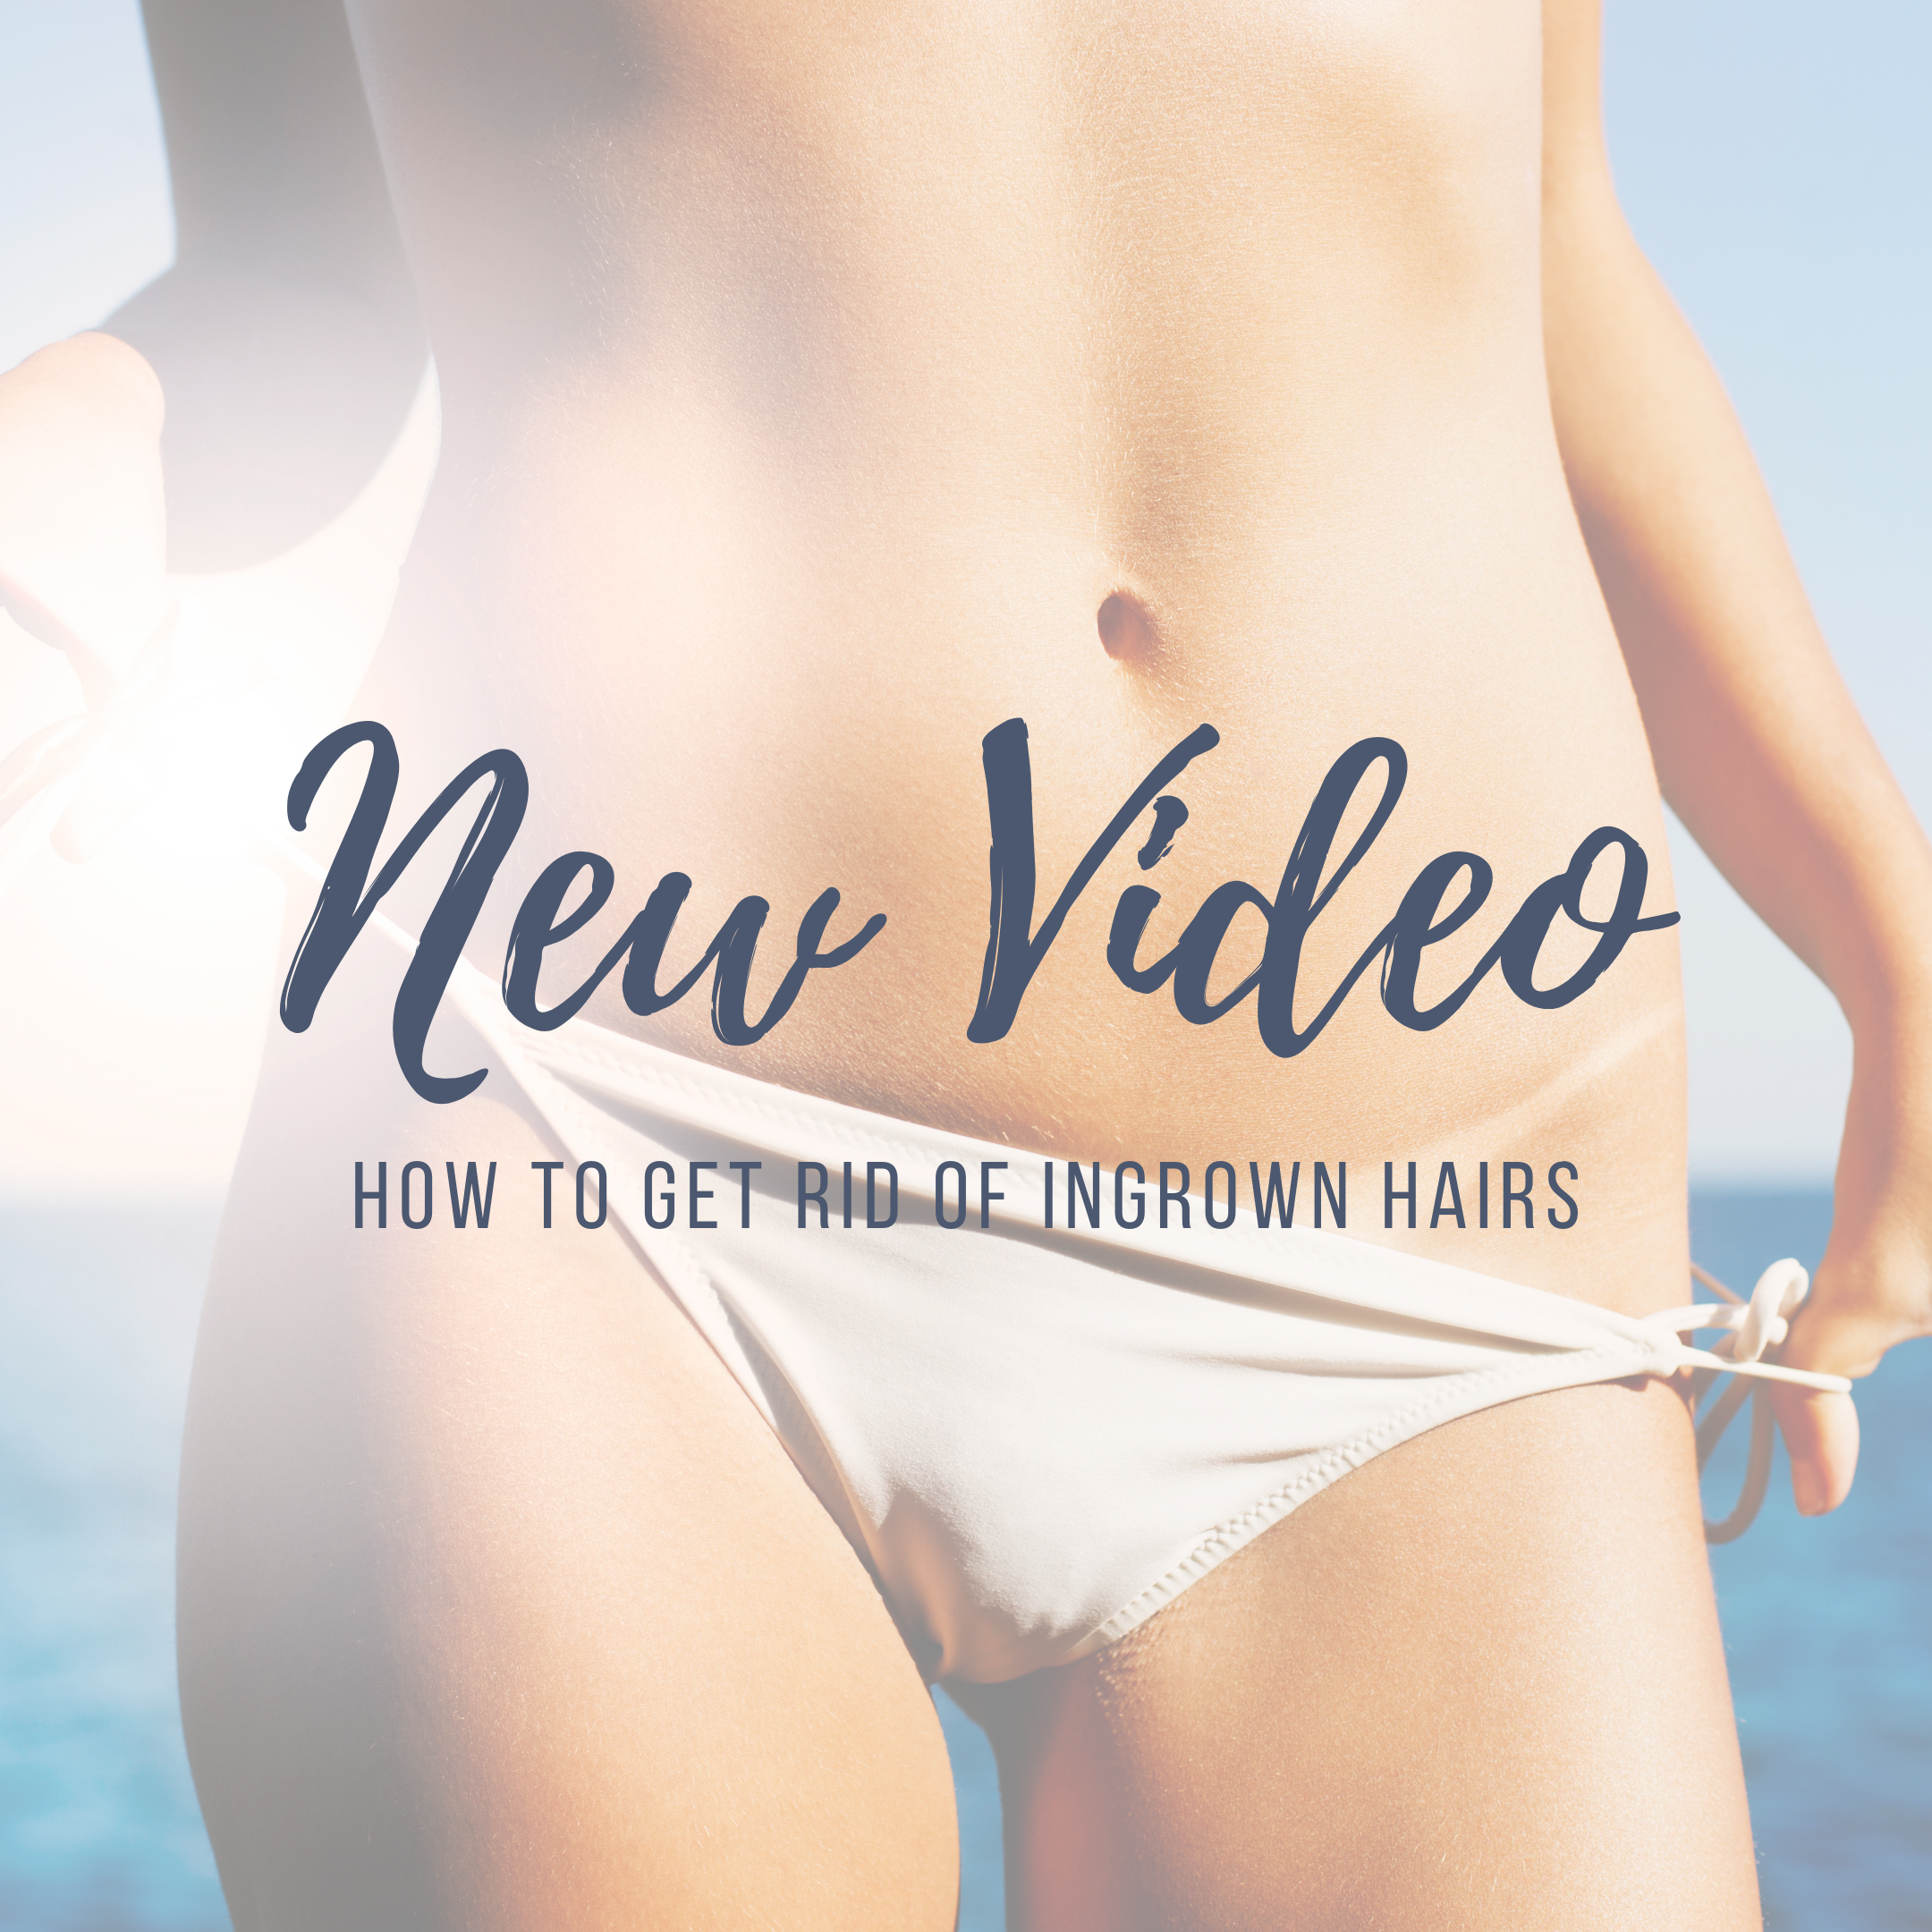 New Video: How to get rid of ingrown hairs